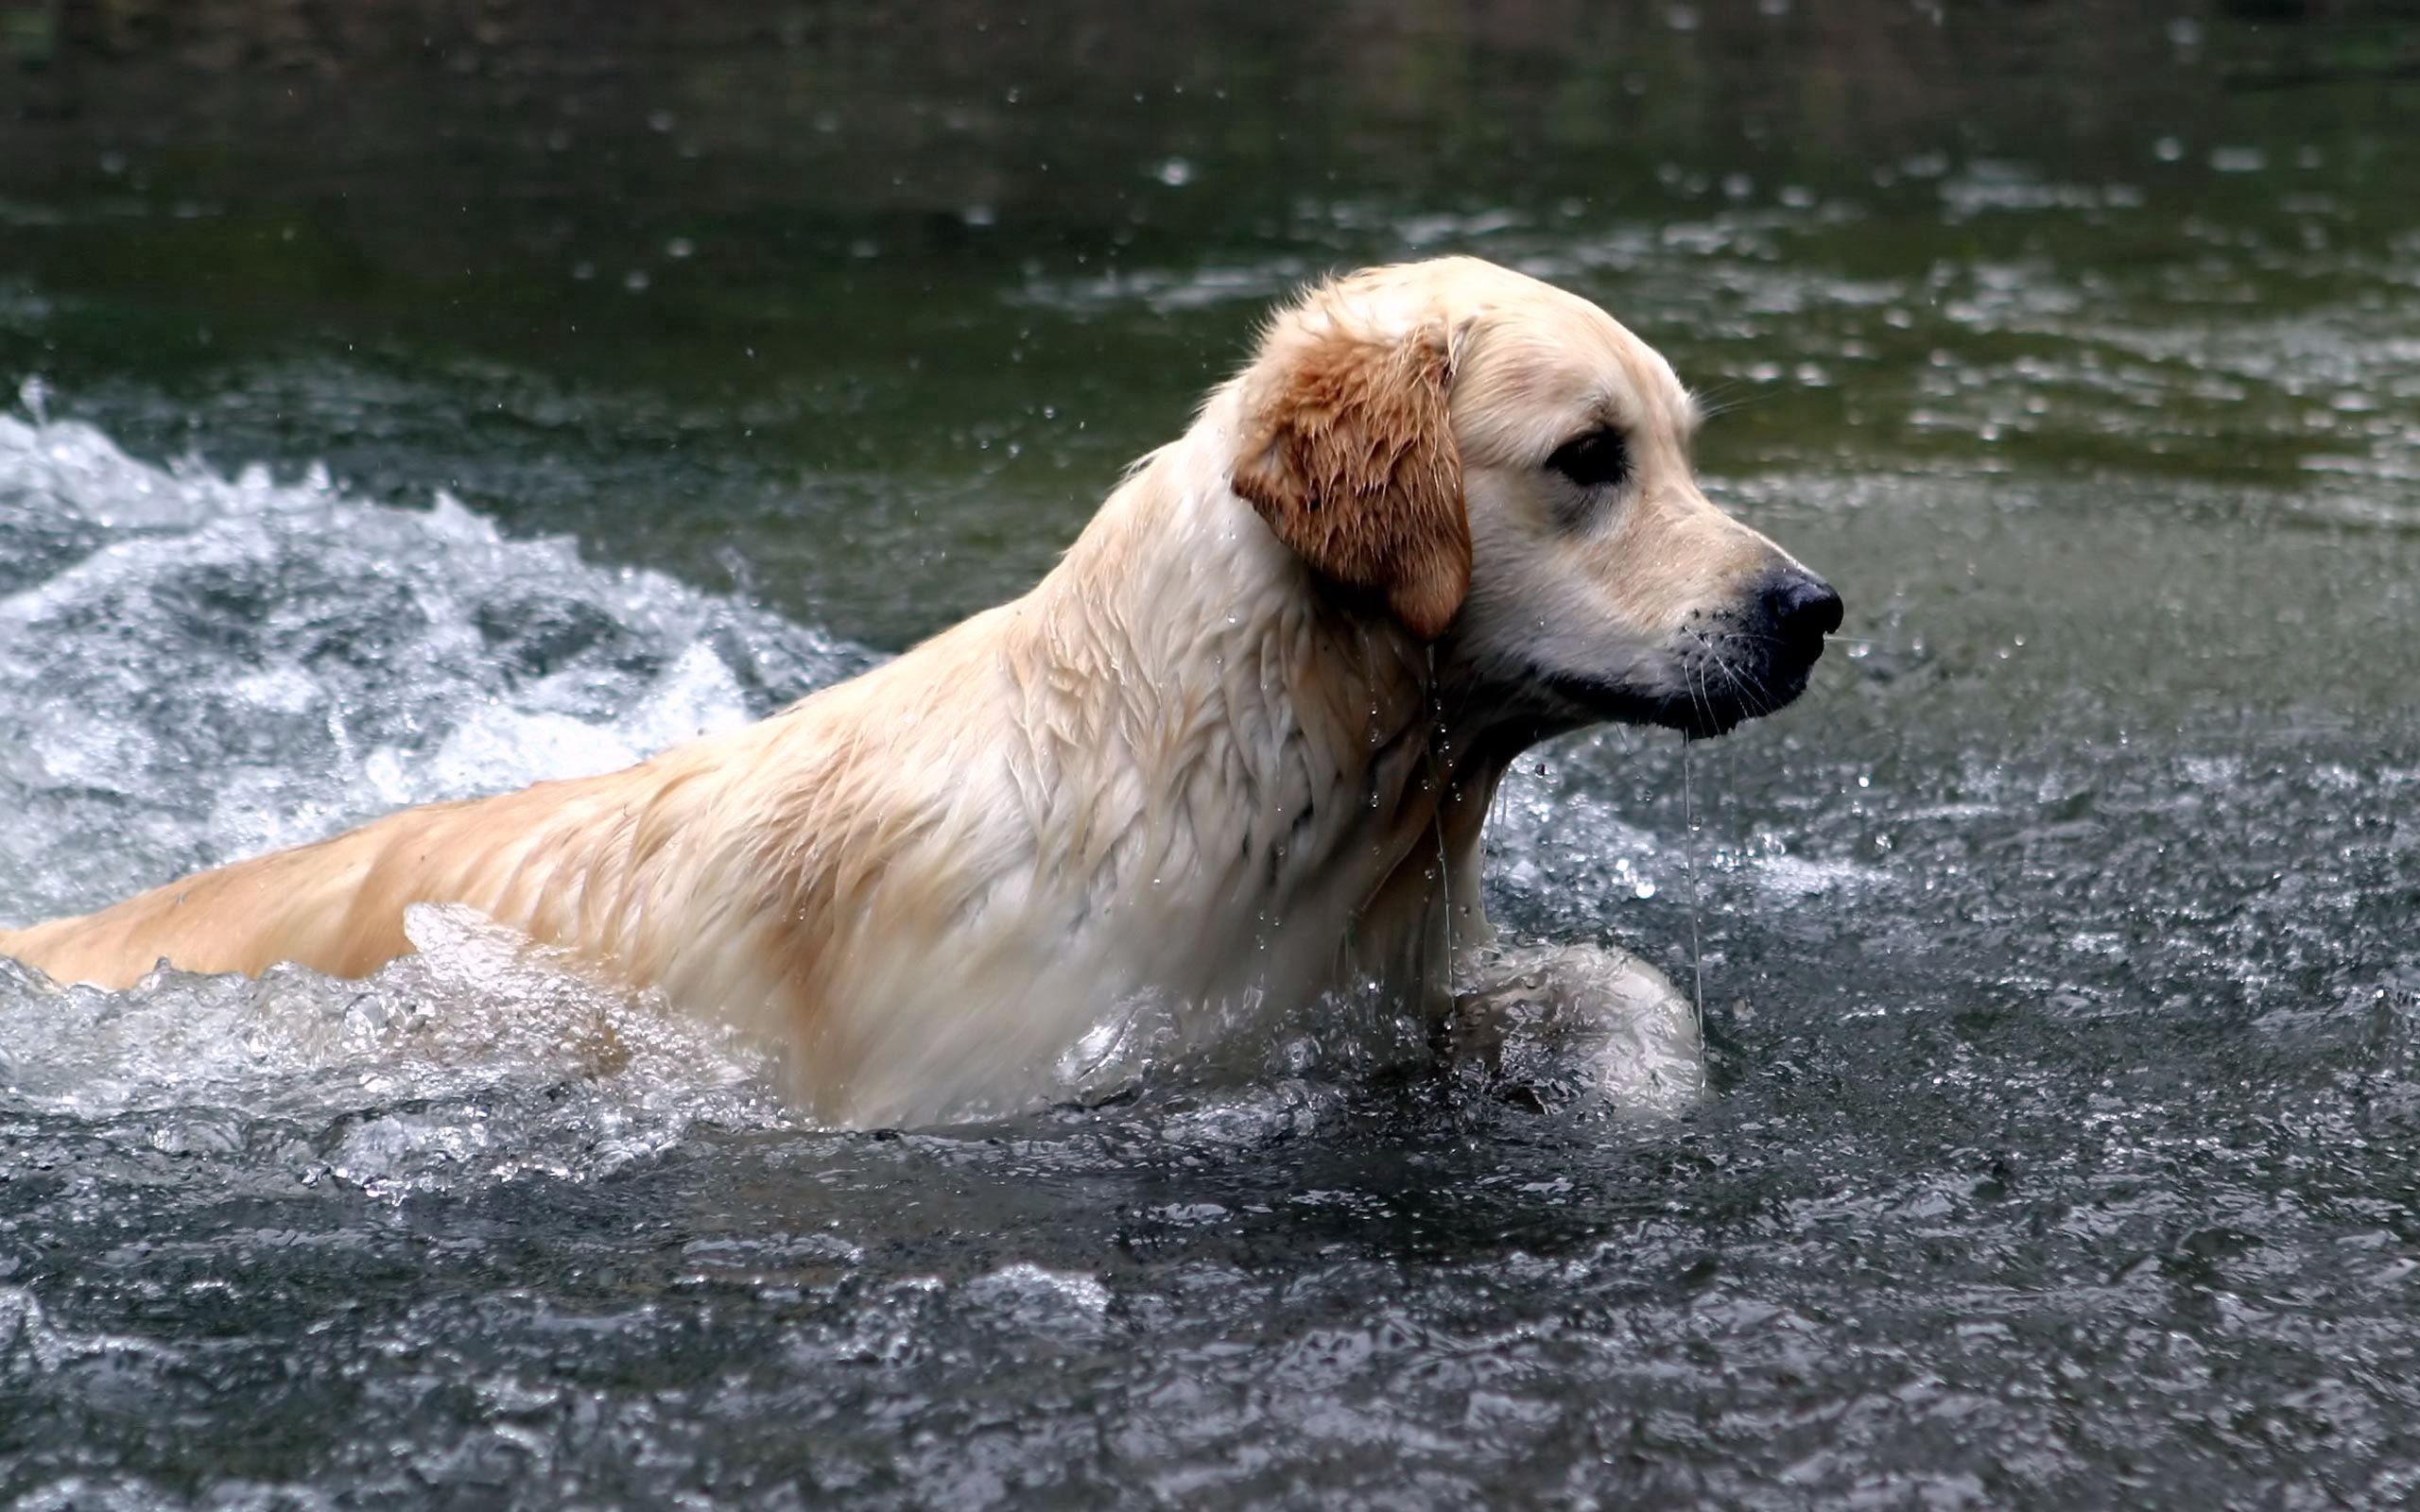 56714 download wallpaper Animals, Dog, Labrador, Water, Spray, To Swim, Swim screensavers and pictures for free